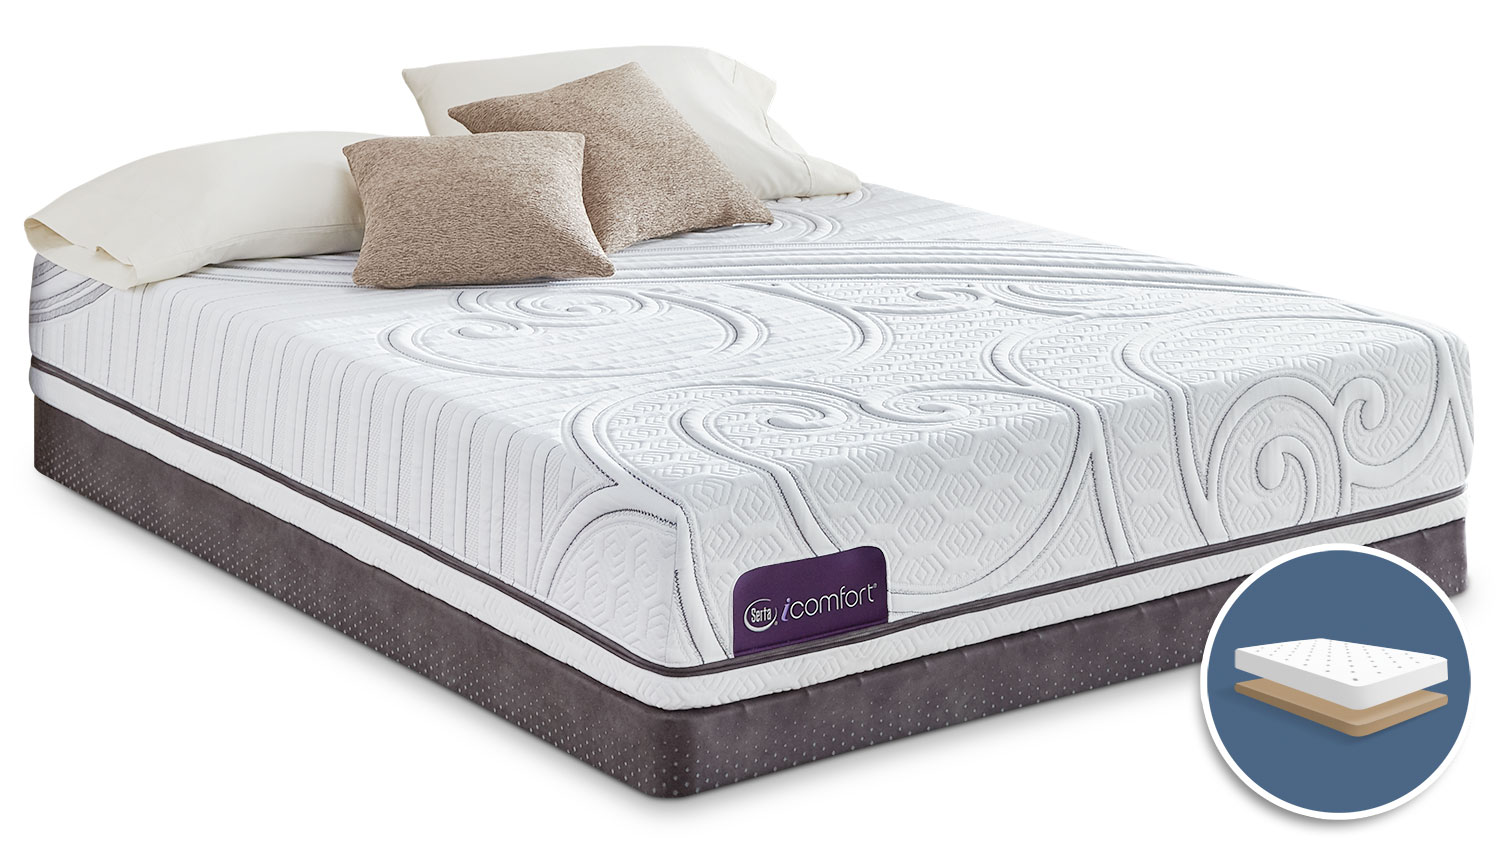 Mattresses and Bedding - Serta iComfort Intellectual 2 Firm Queen Low-Profile Mattress Set